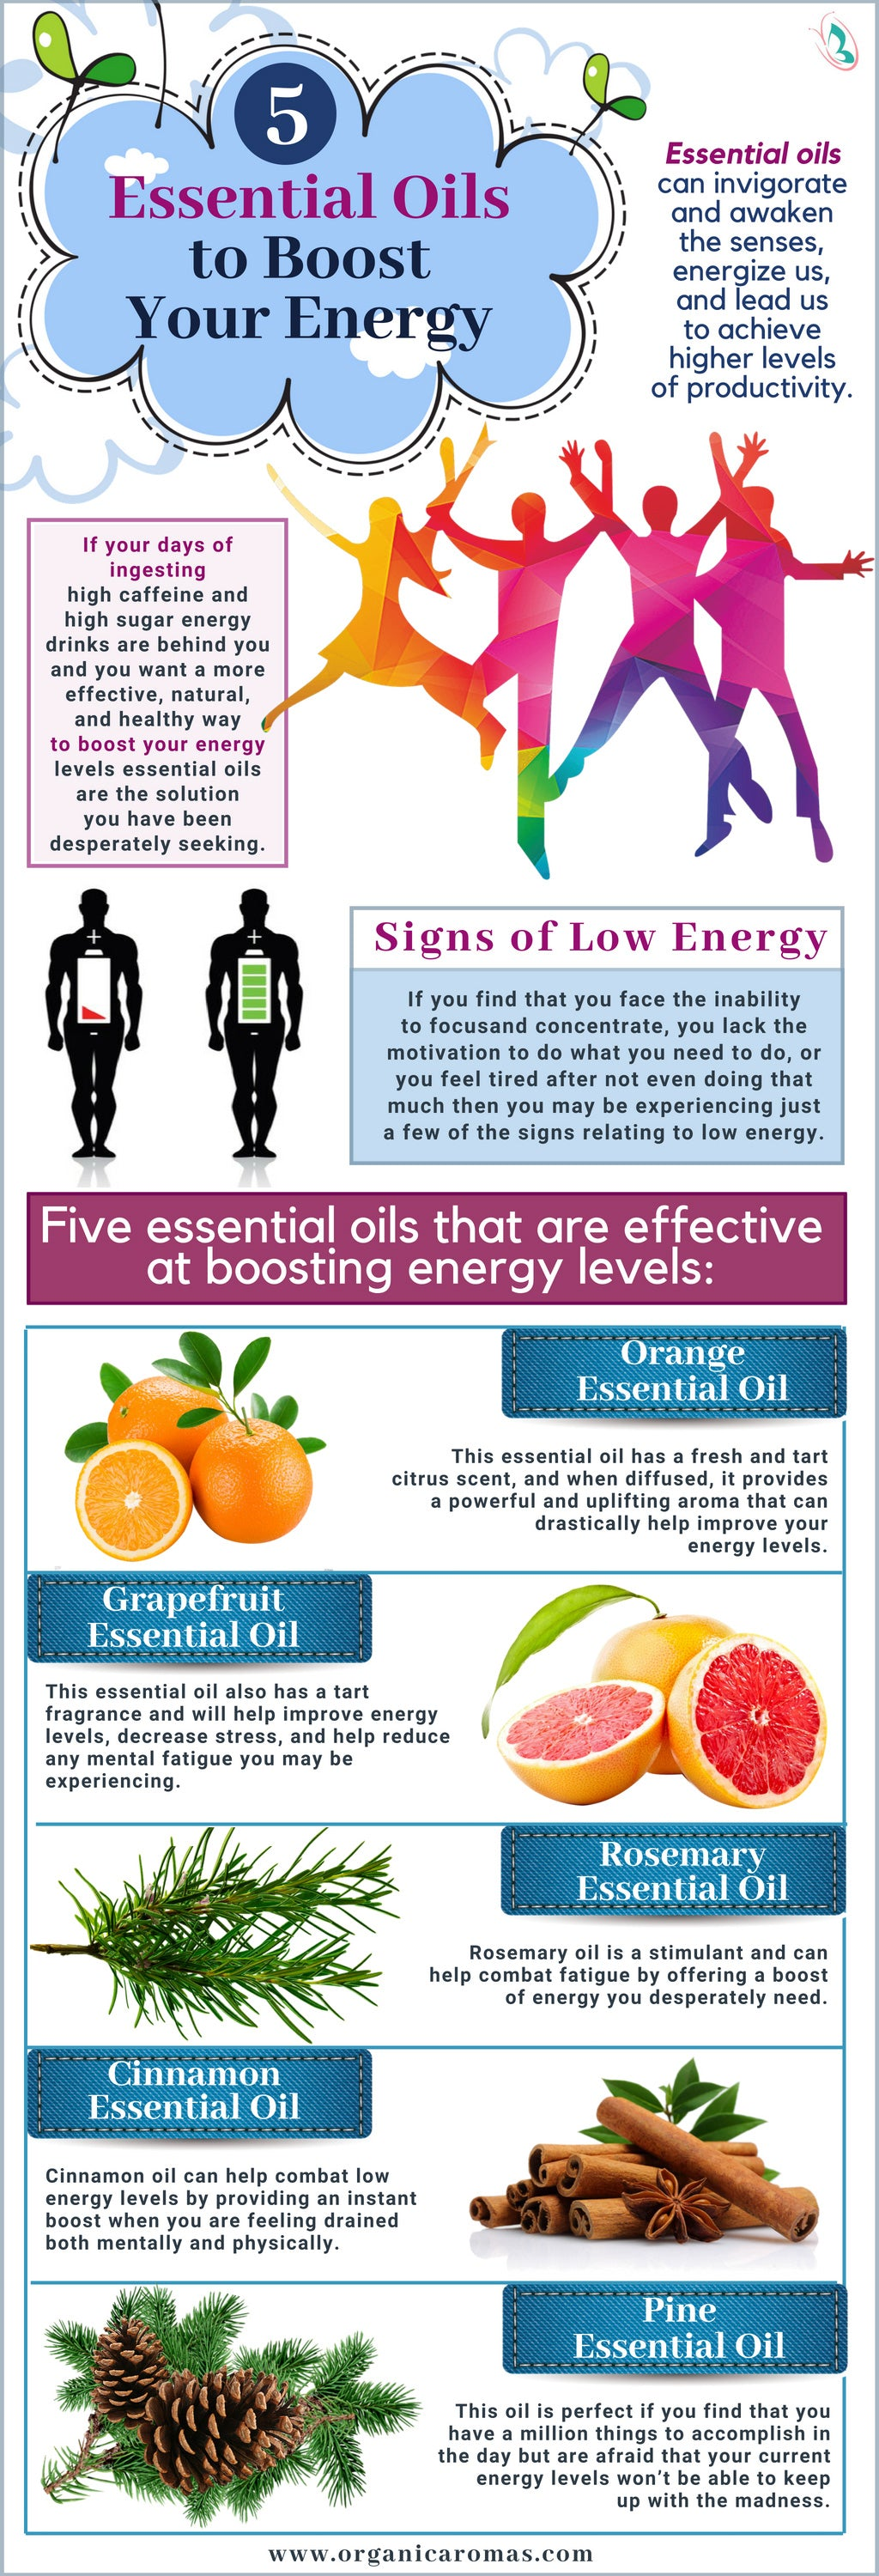 5 Essential Oils to Boost Your Energy